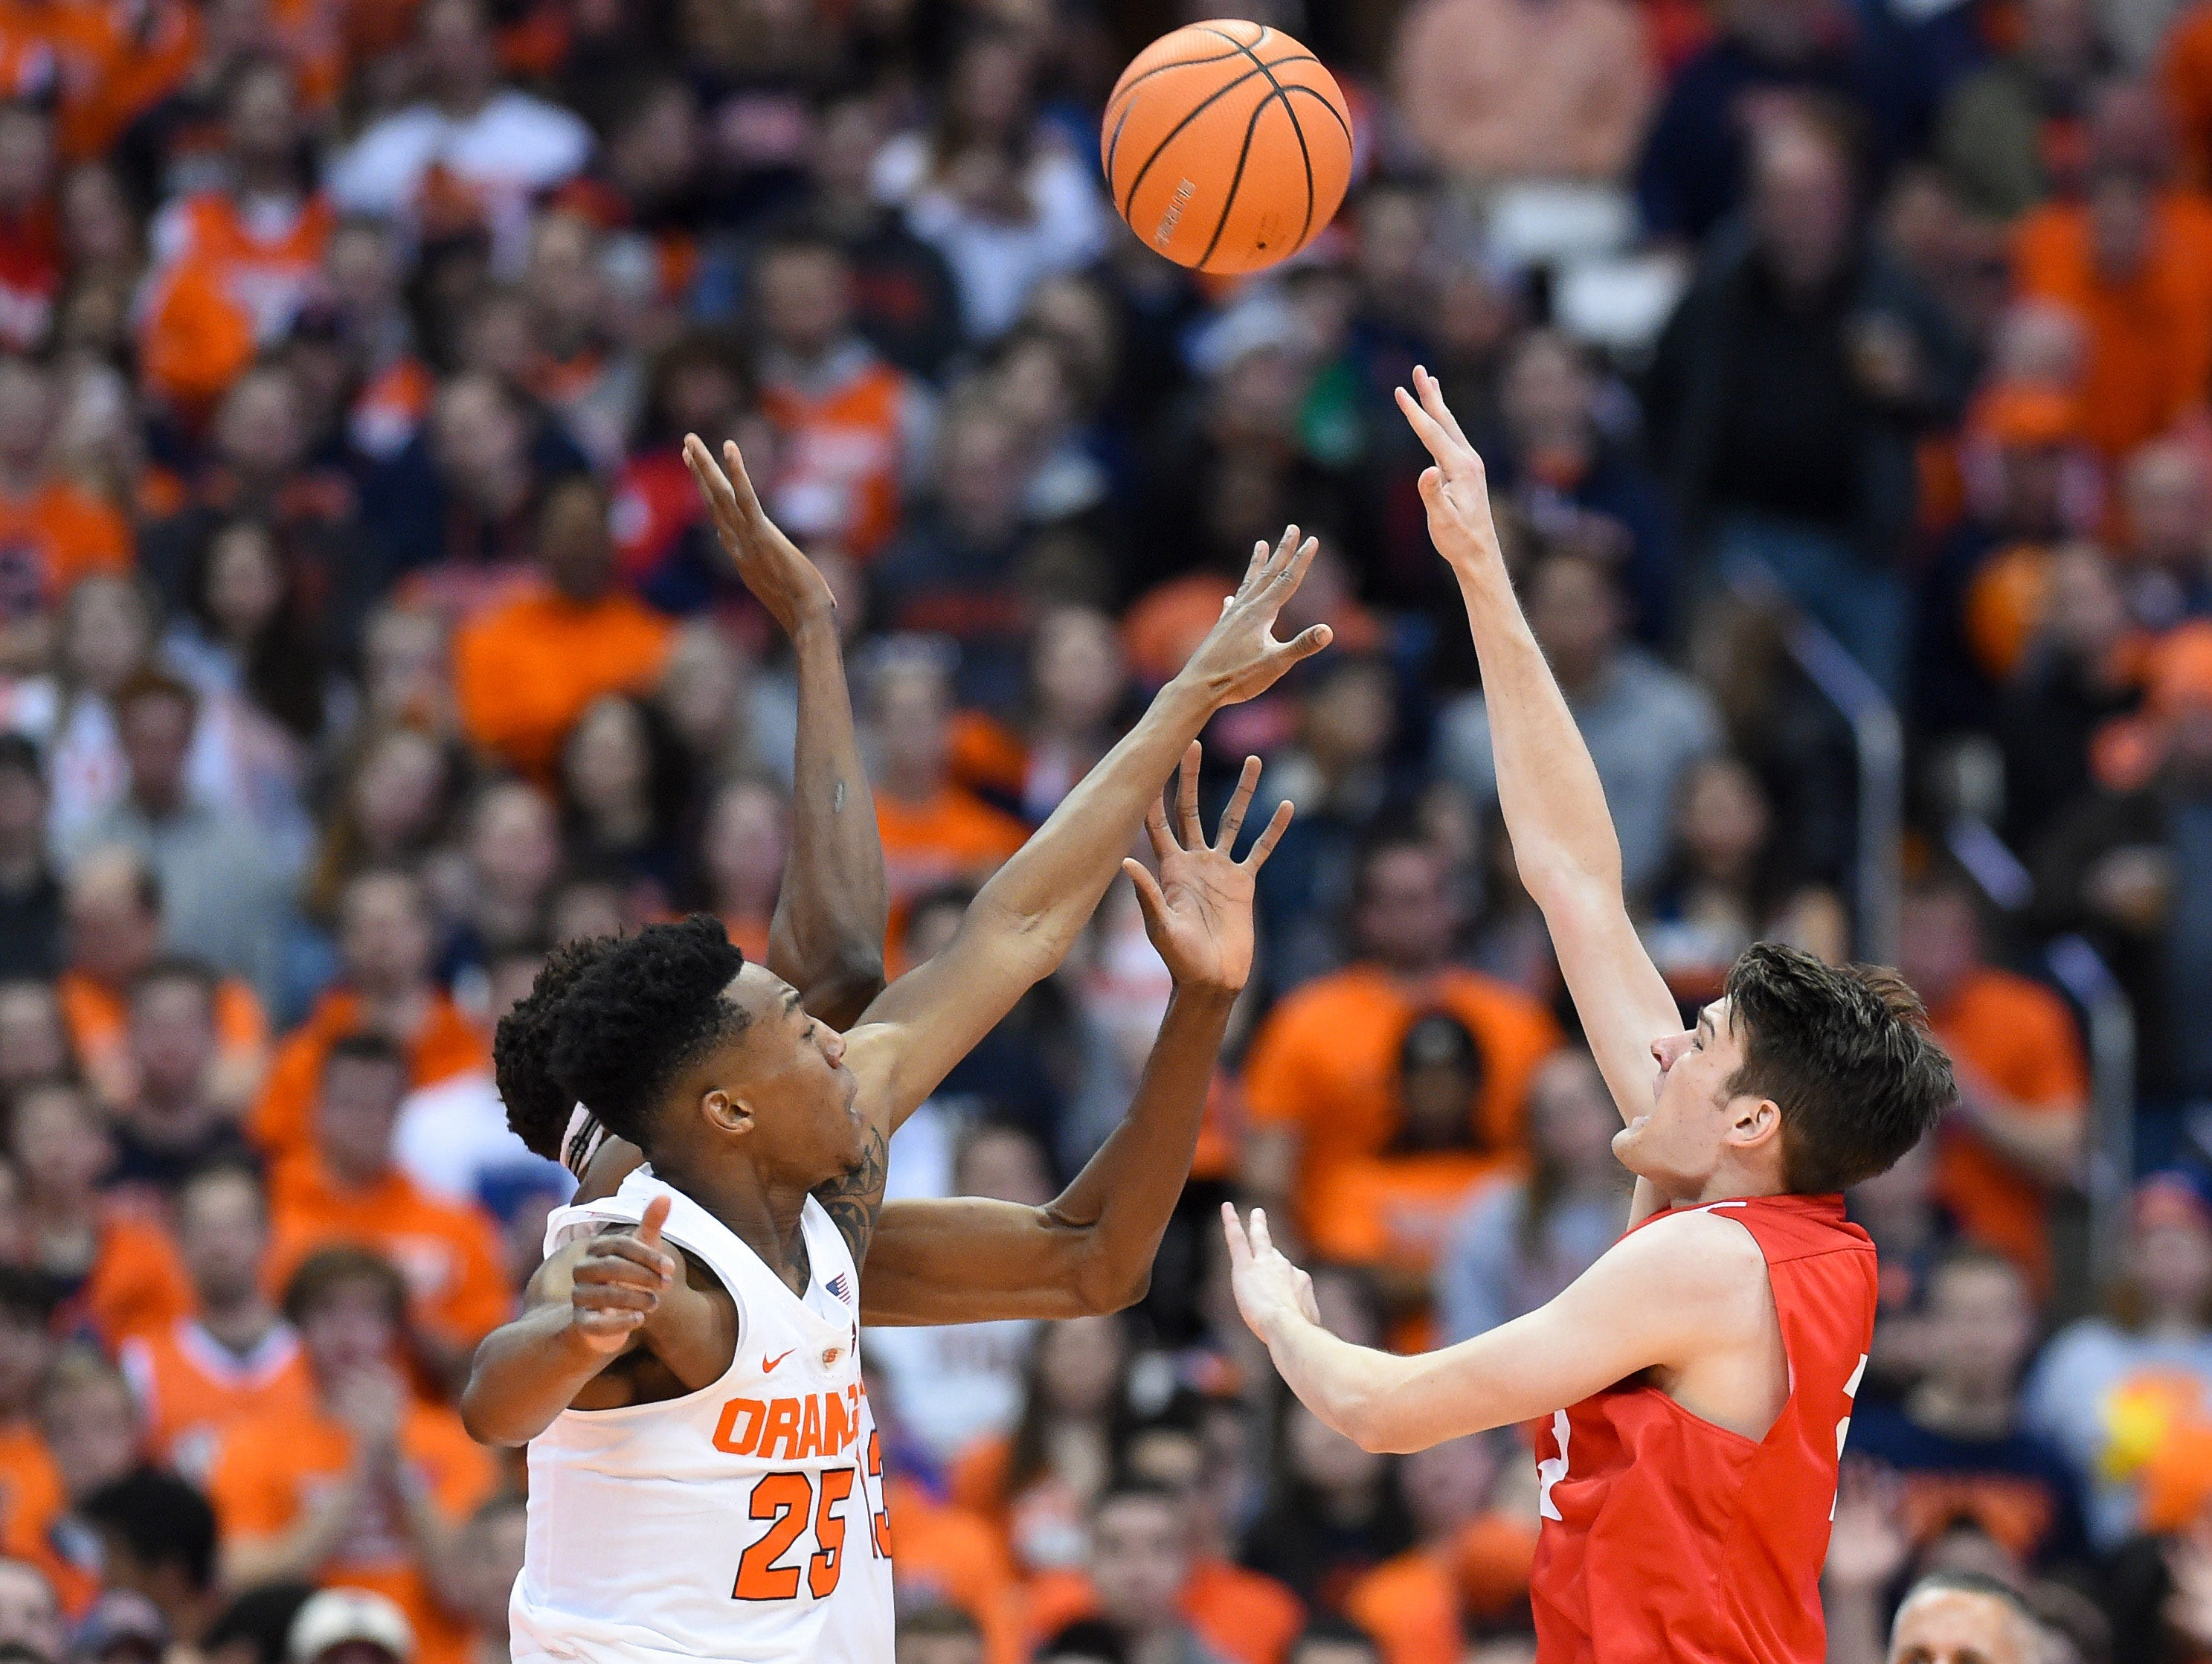 Nov 10, 2017; Syracuse, NY, USA; Cornell Big Red forward Jimmy Boeheim (3) shoots the ball as Syracuse Orange guard Tyus Battle (25) defends during the first half at the Carrier Dome. Mandatory Credit: Rich Barnes-USA TODAY Sports